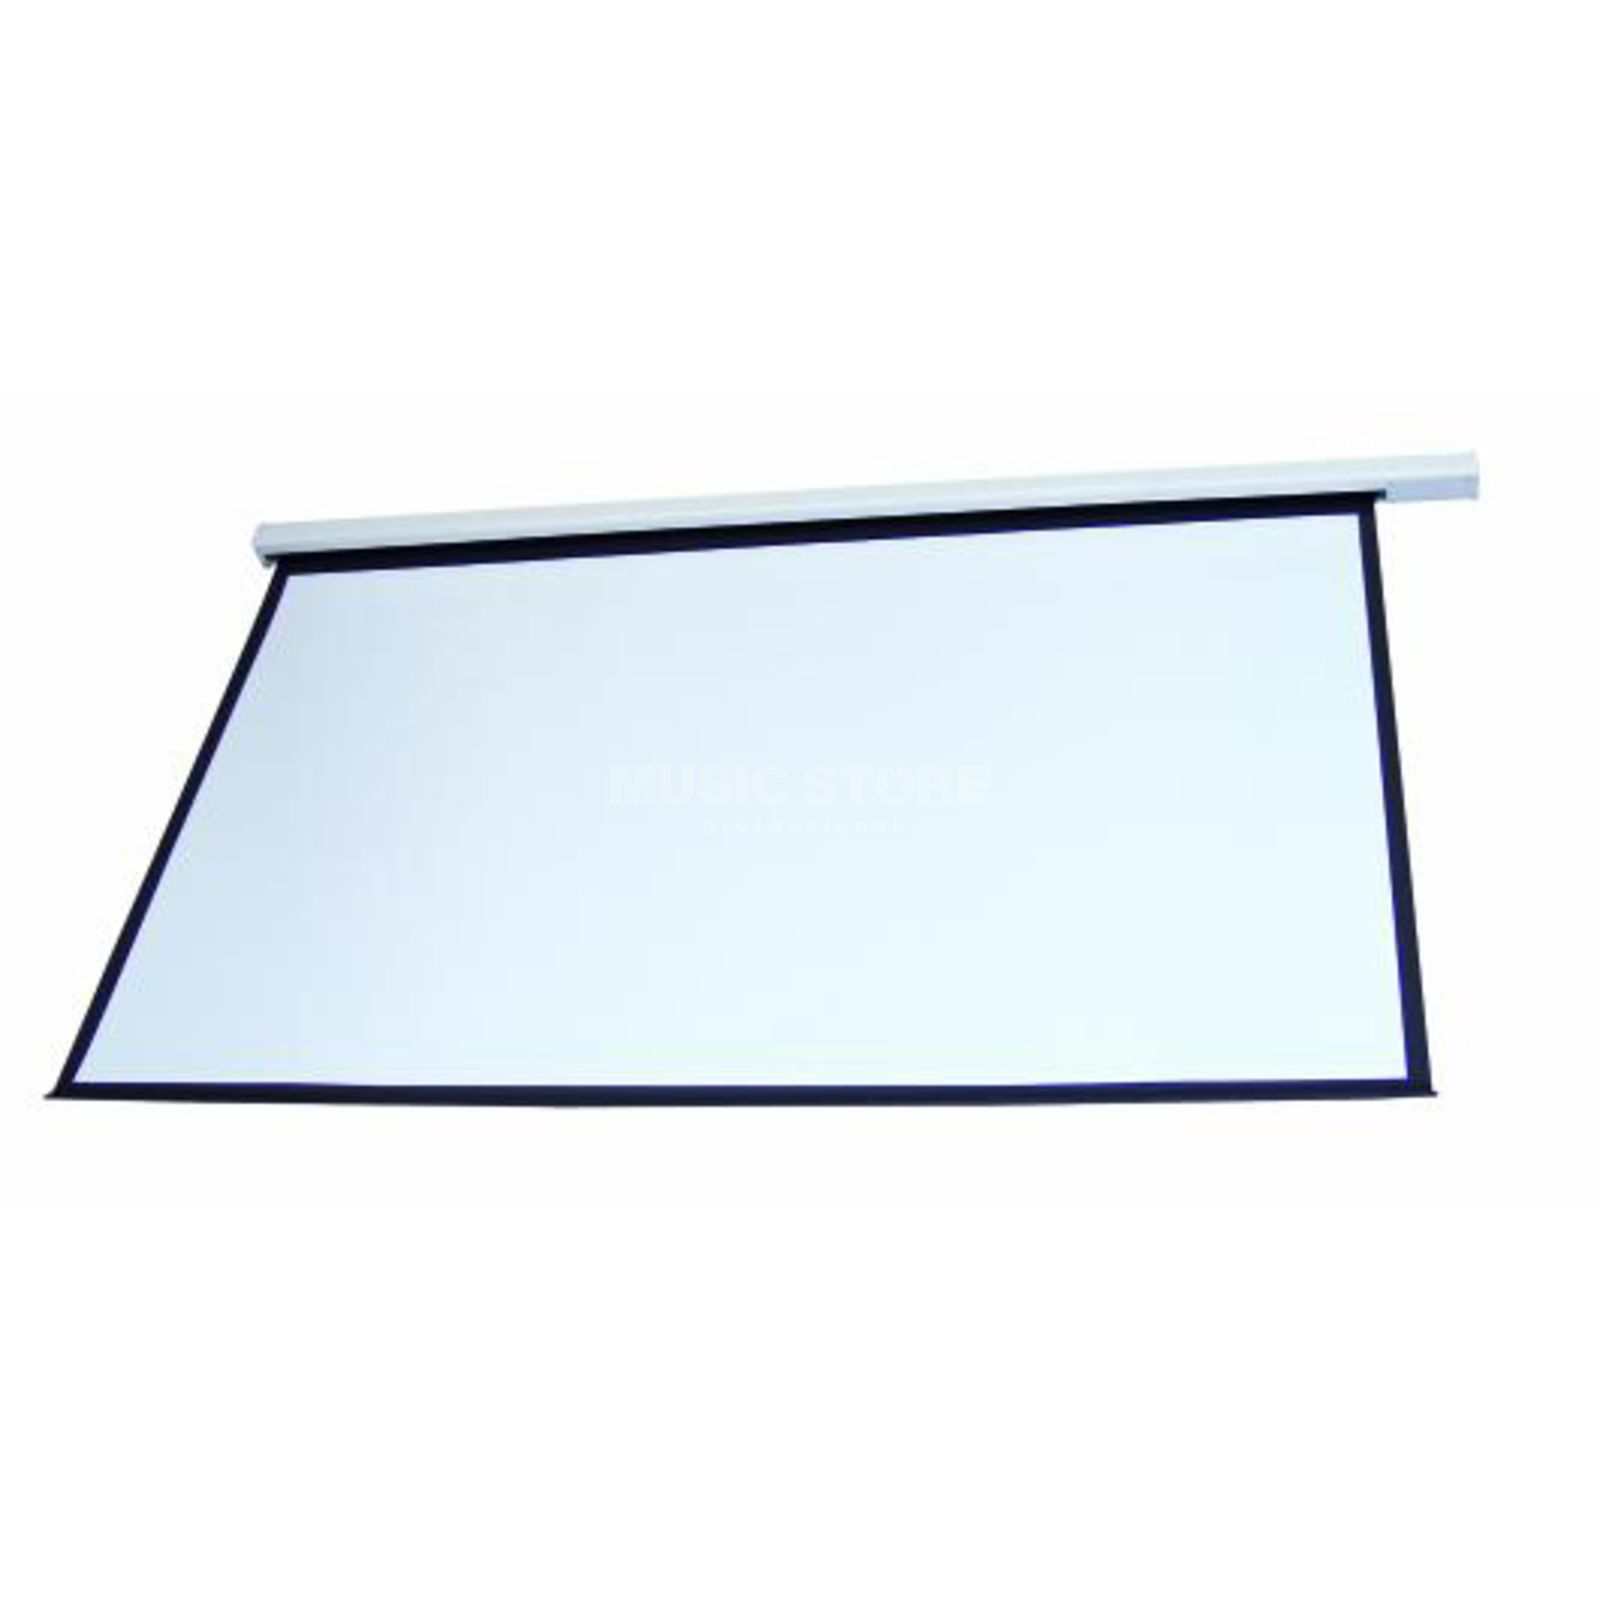 "Eurolite Motorized Screen 16:9 300 x 168cm 135"" Produktbillede"